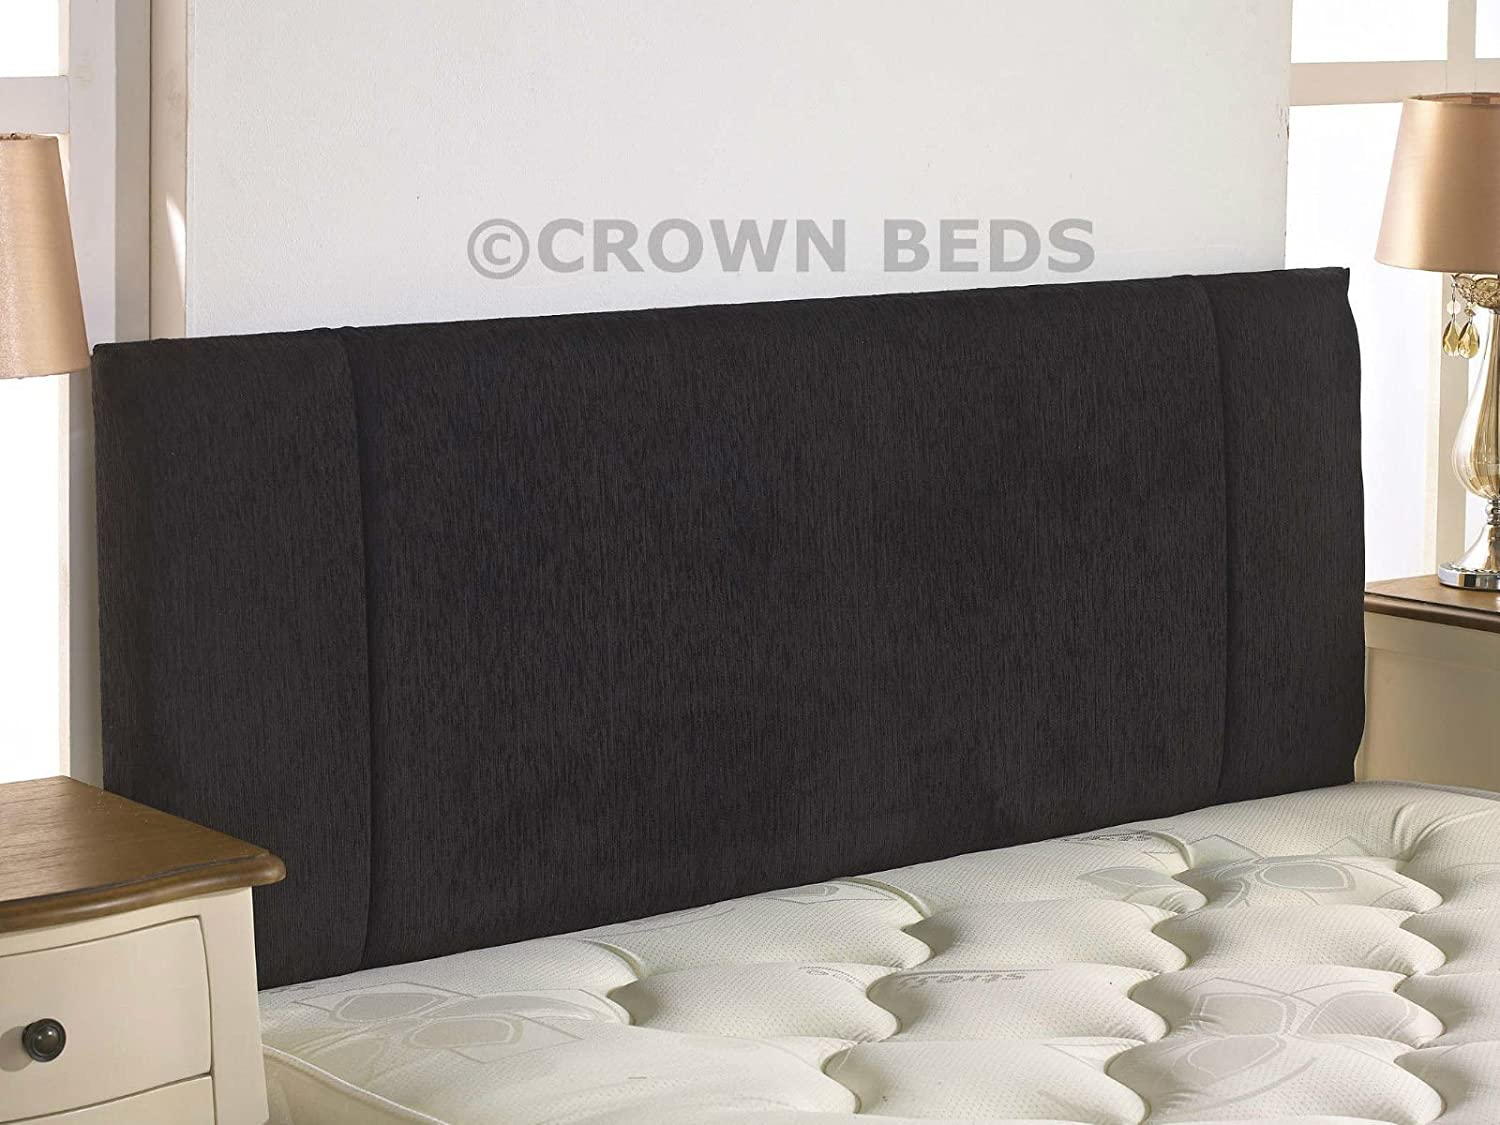 CROWNBEDSUK QUALITY PORTOBELLO CHENILLE HEADBOARD 2ft6,3ft,4ft,4ft6,5ft,6ft (2FT6 SMALL SINGLE, Black)